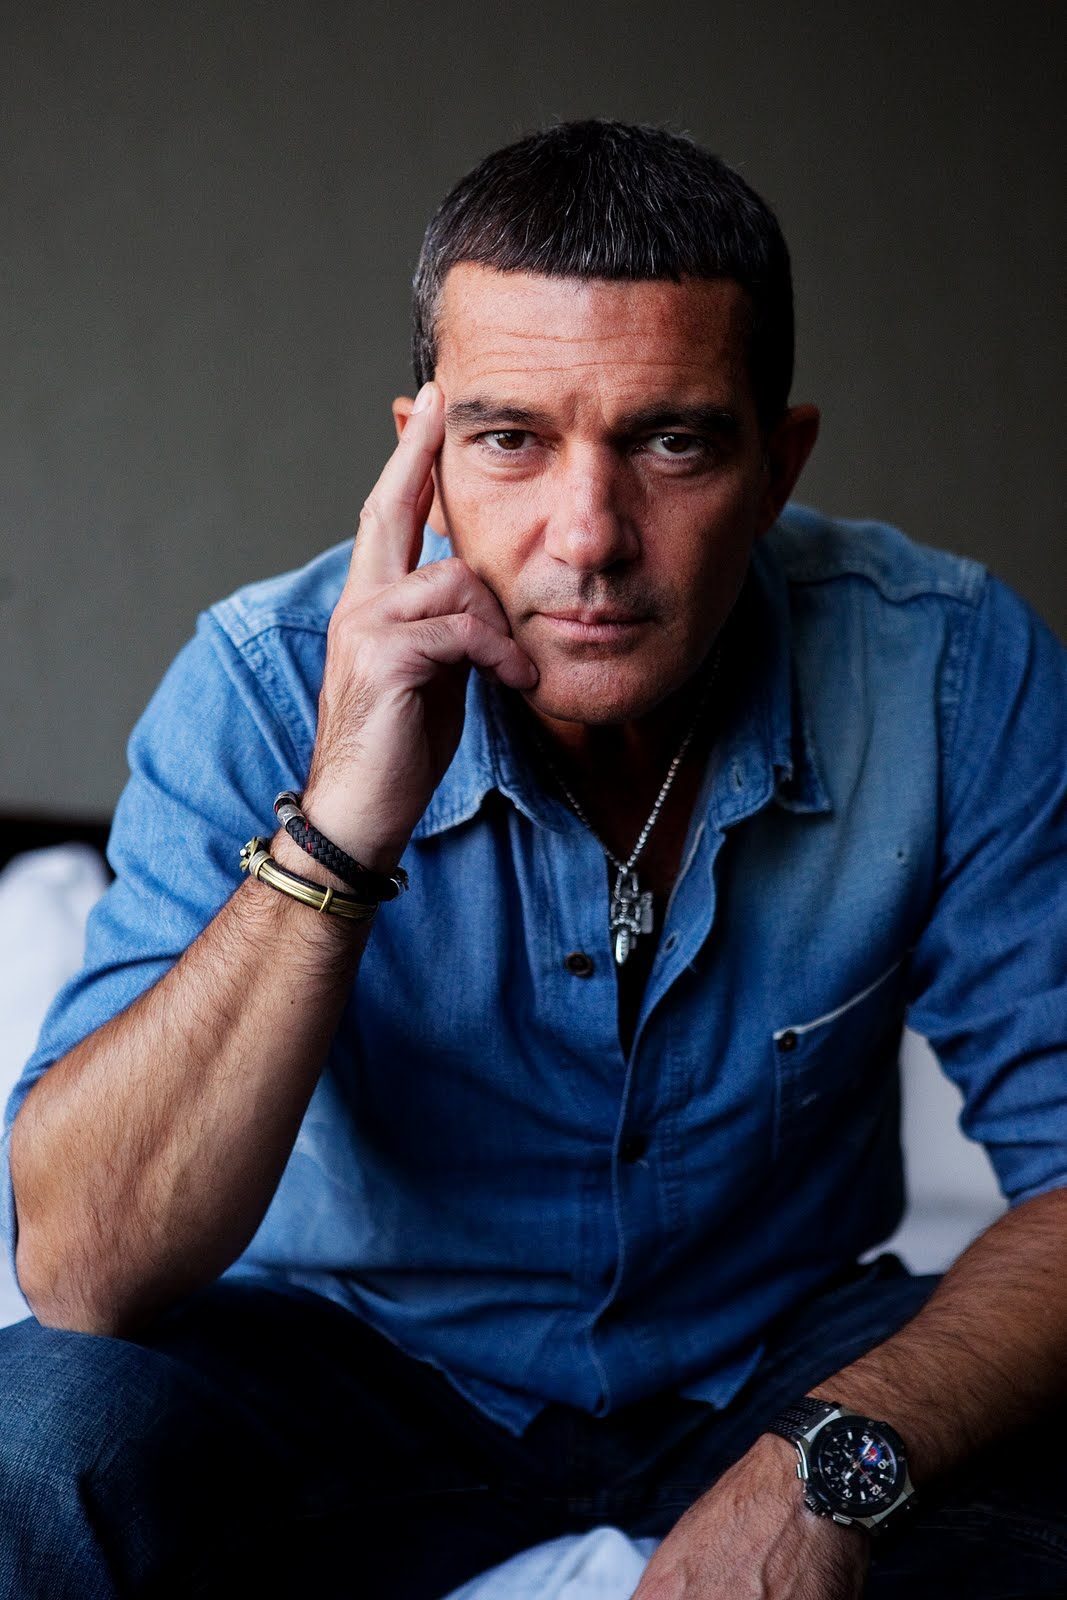 Antonio Banderas photo #366321